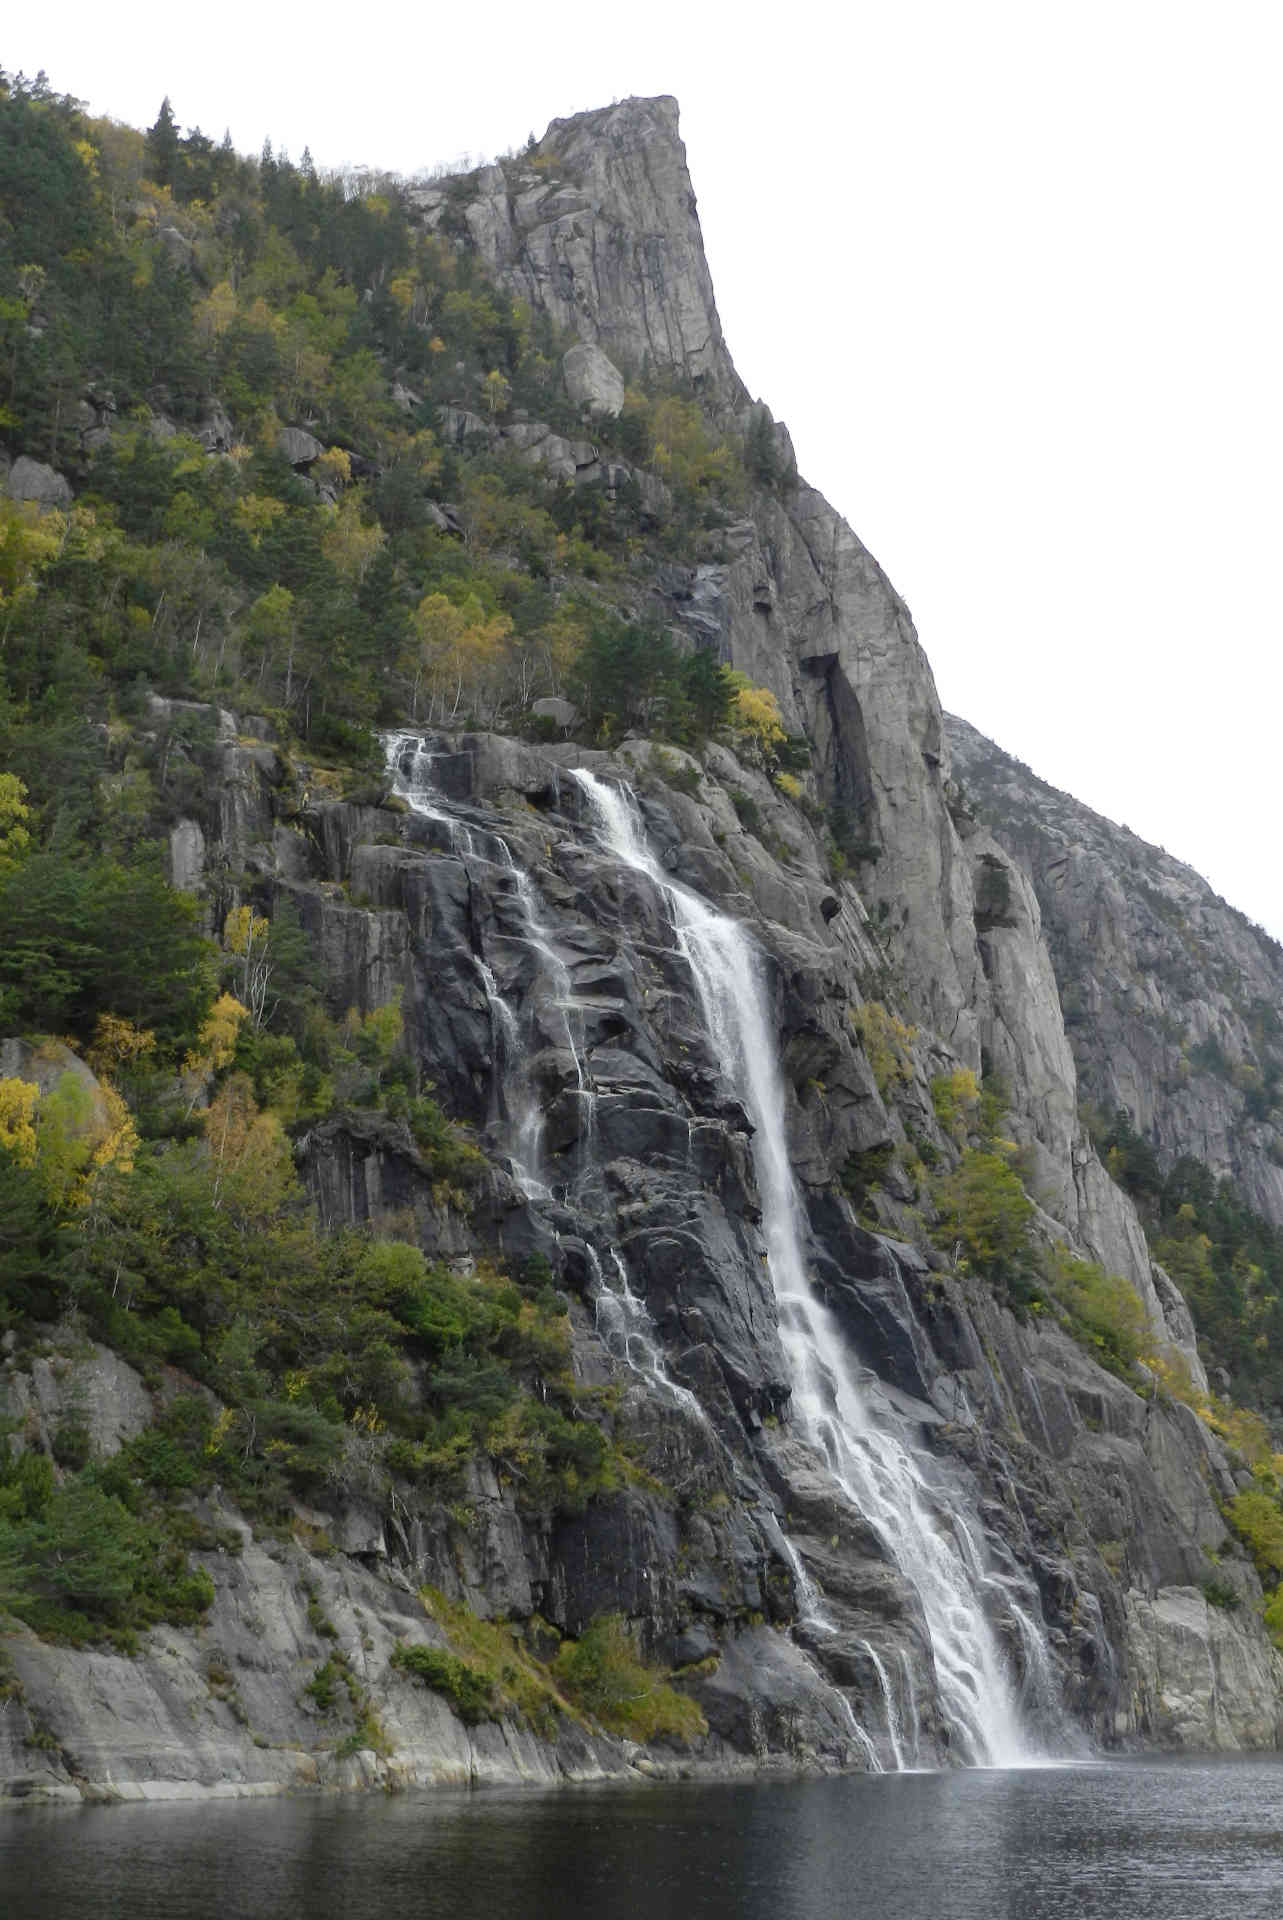 Many waterfalls rush down the steep walls of Lysefjord